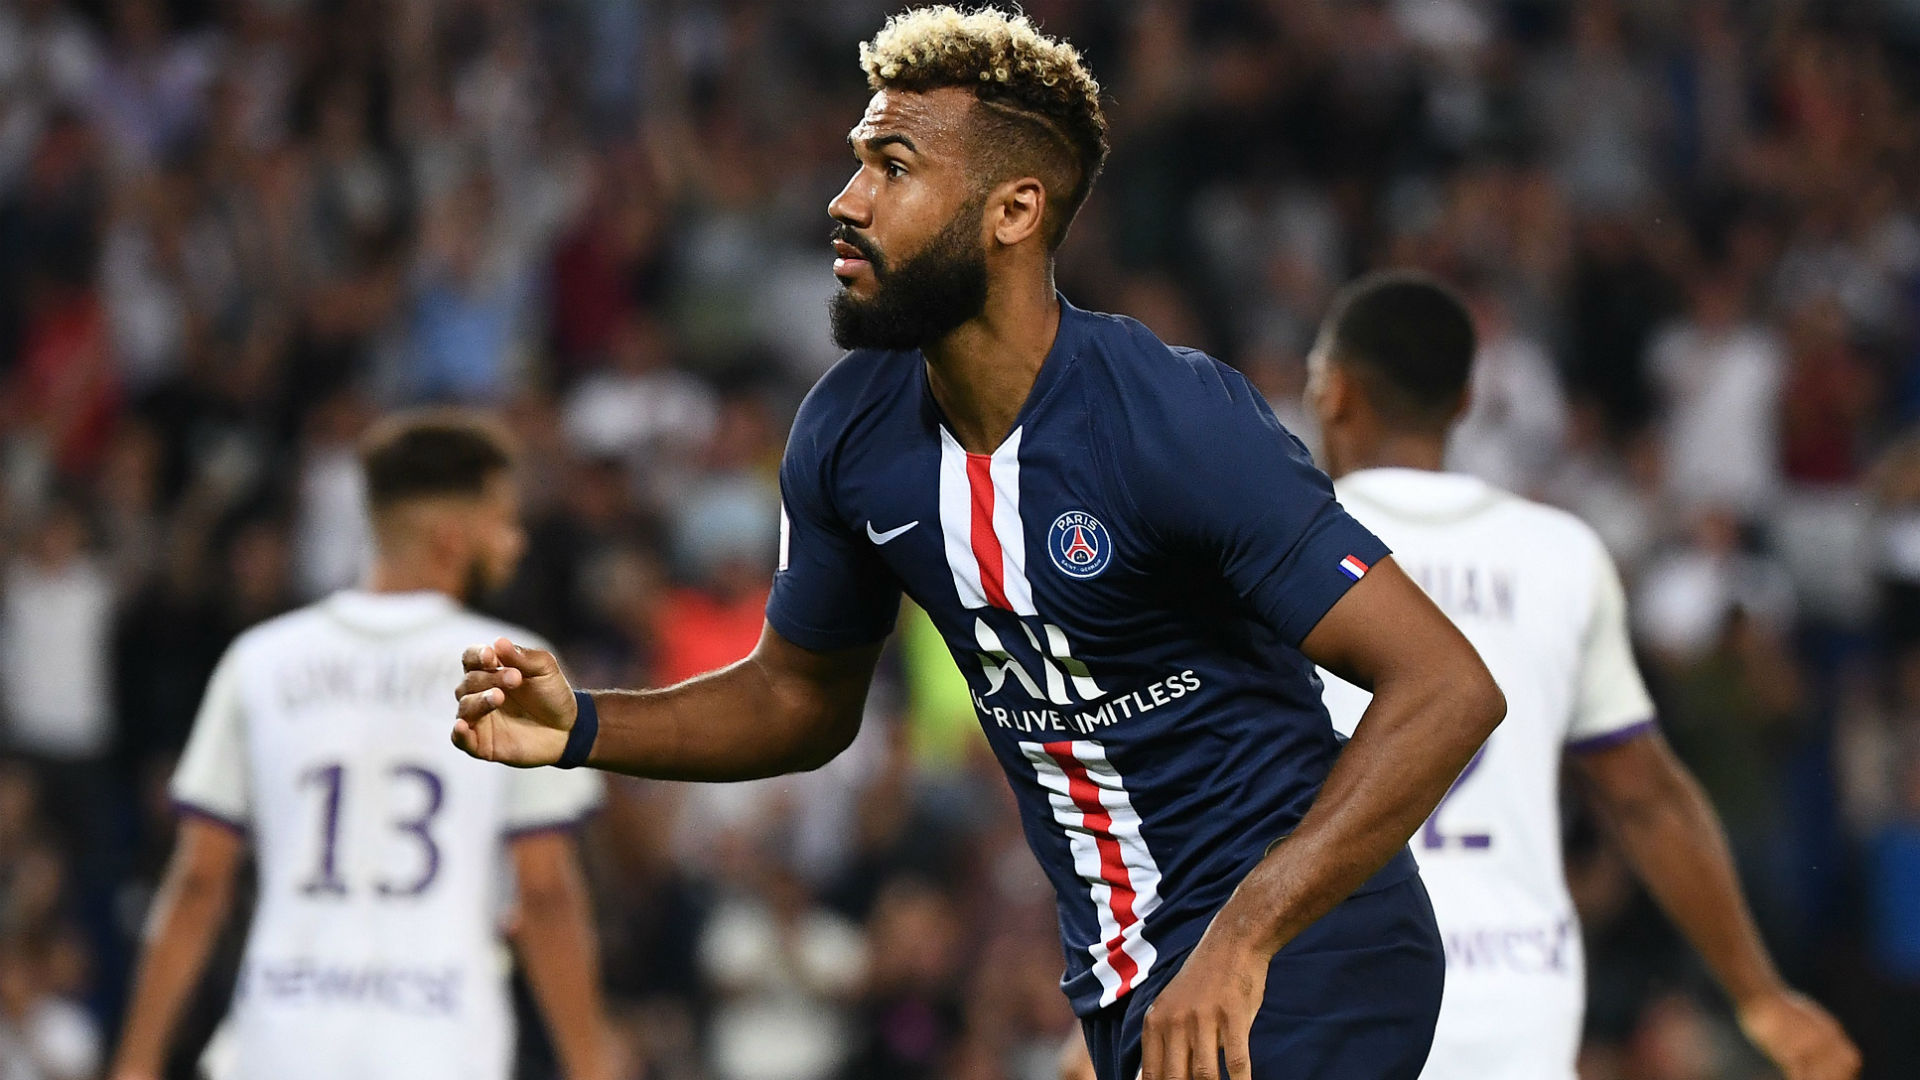 PSG's Choupo-Moting happy to start 2020 with victory and a goal